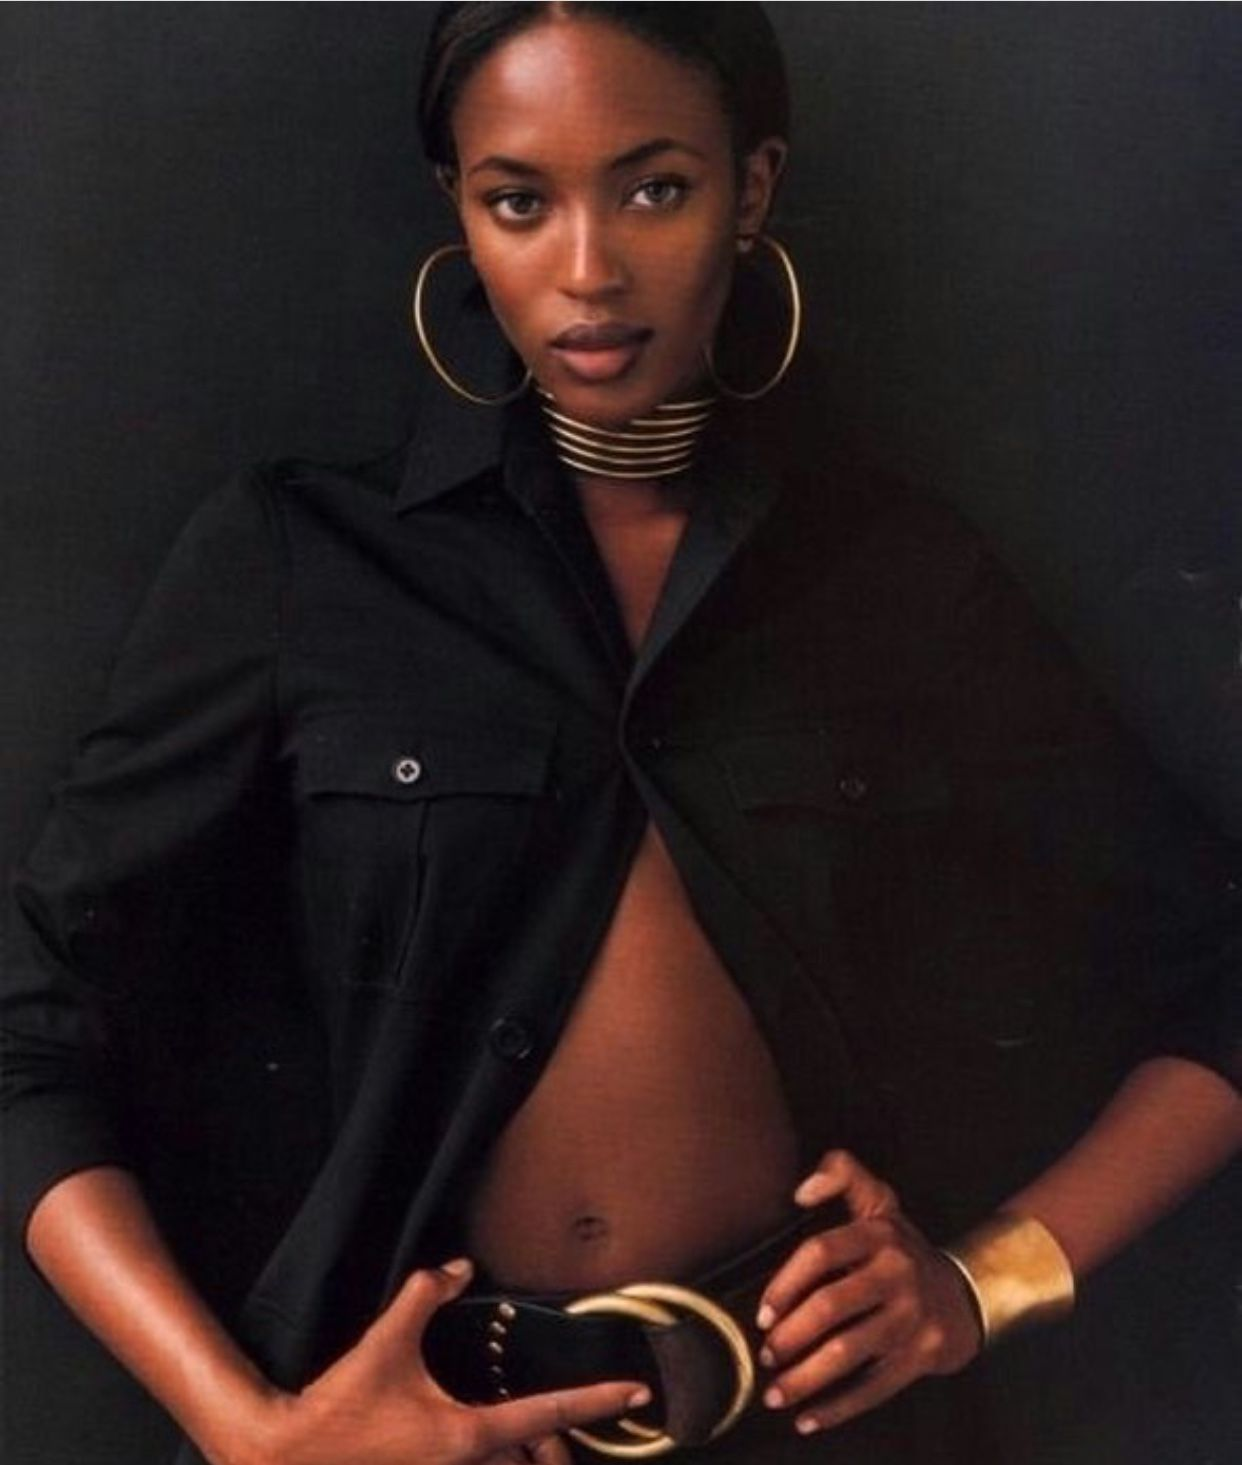 RALPH LAUREN Naomi Campbell By Patrick Demarchelier   Photography ... 15ef8bab2ee0